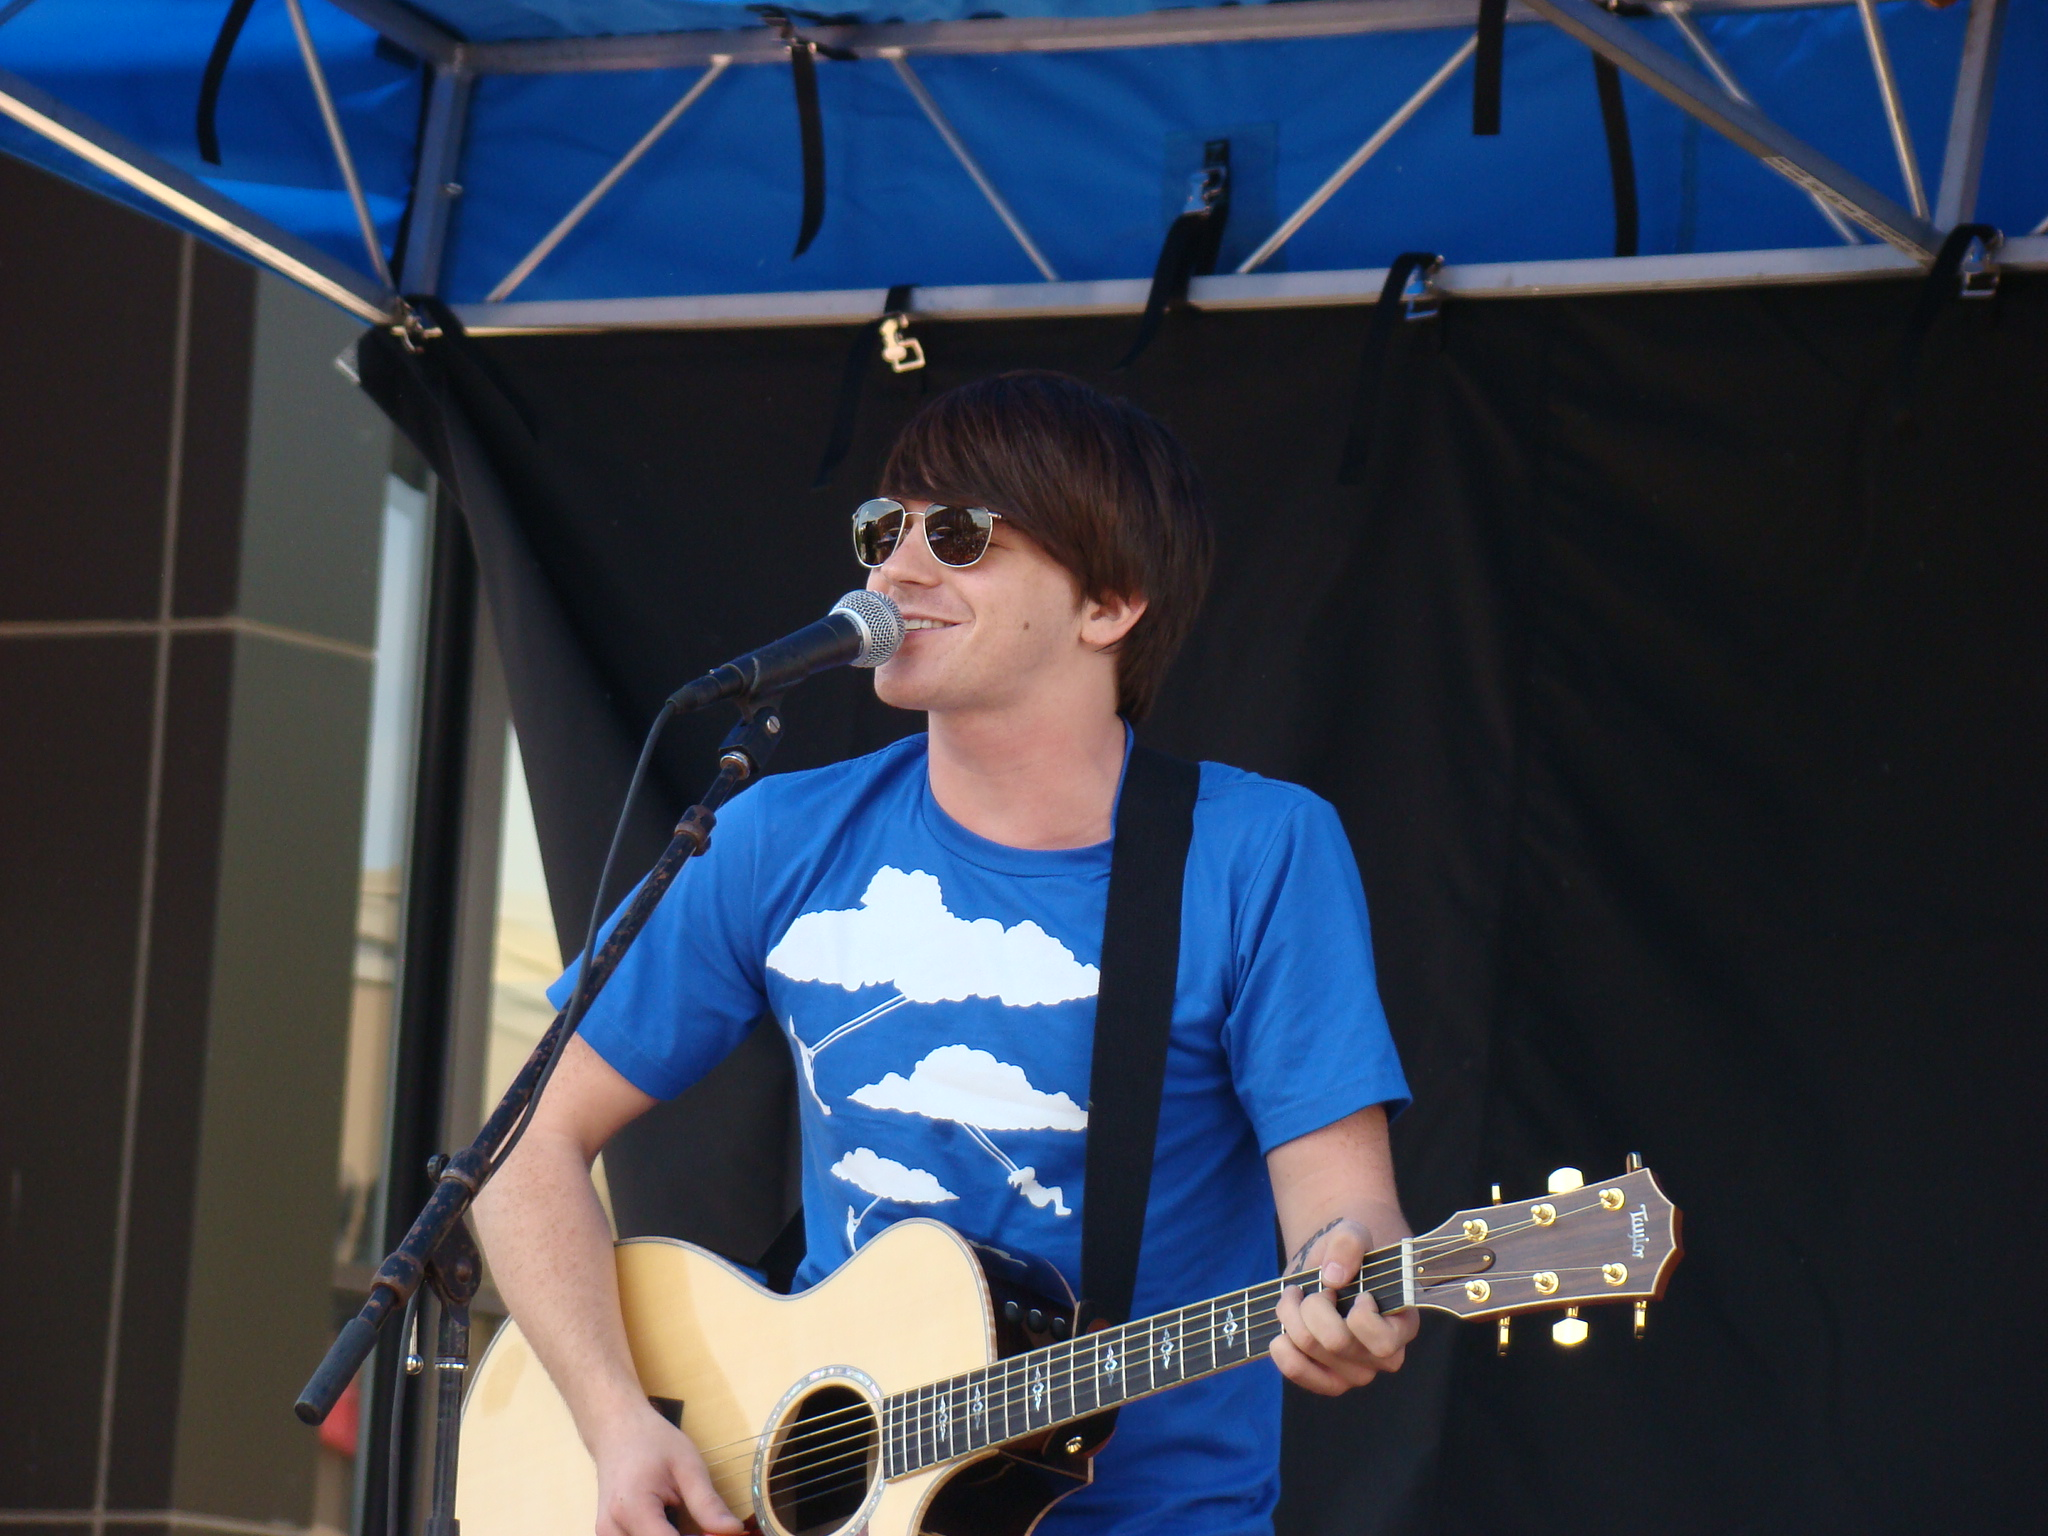 Filedrake bell 9g wikimedia commons filedrake bell 9g voltagebd Image collections